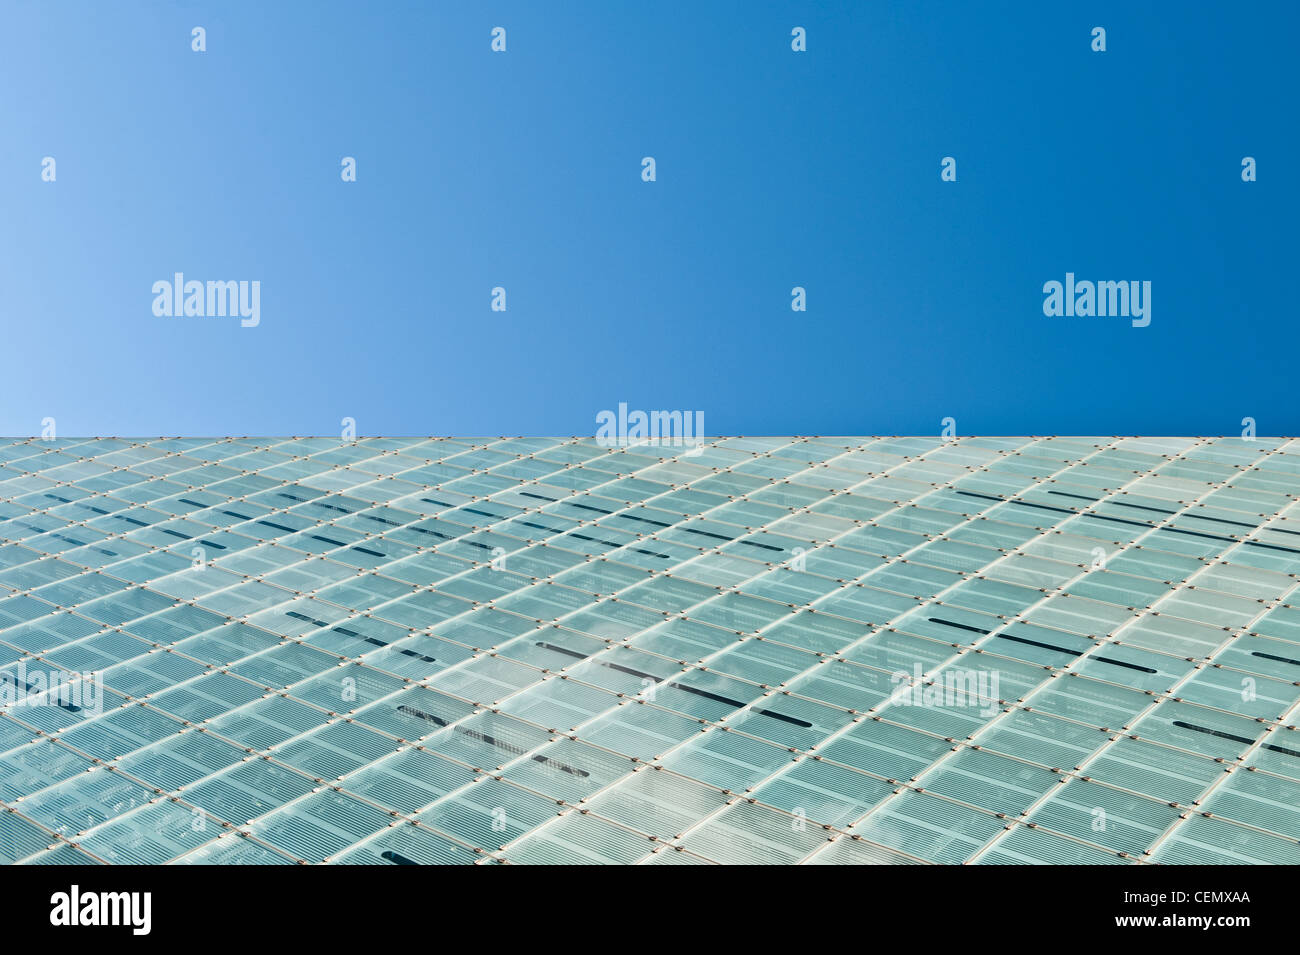 The glass curtain of Urbis centre / National Football Museum in Manchester meets a cloudless clear blue sky. - Stock Image